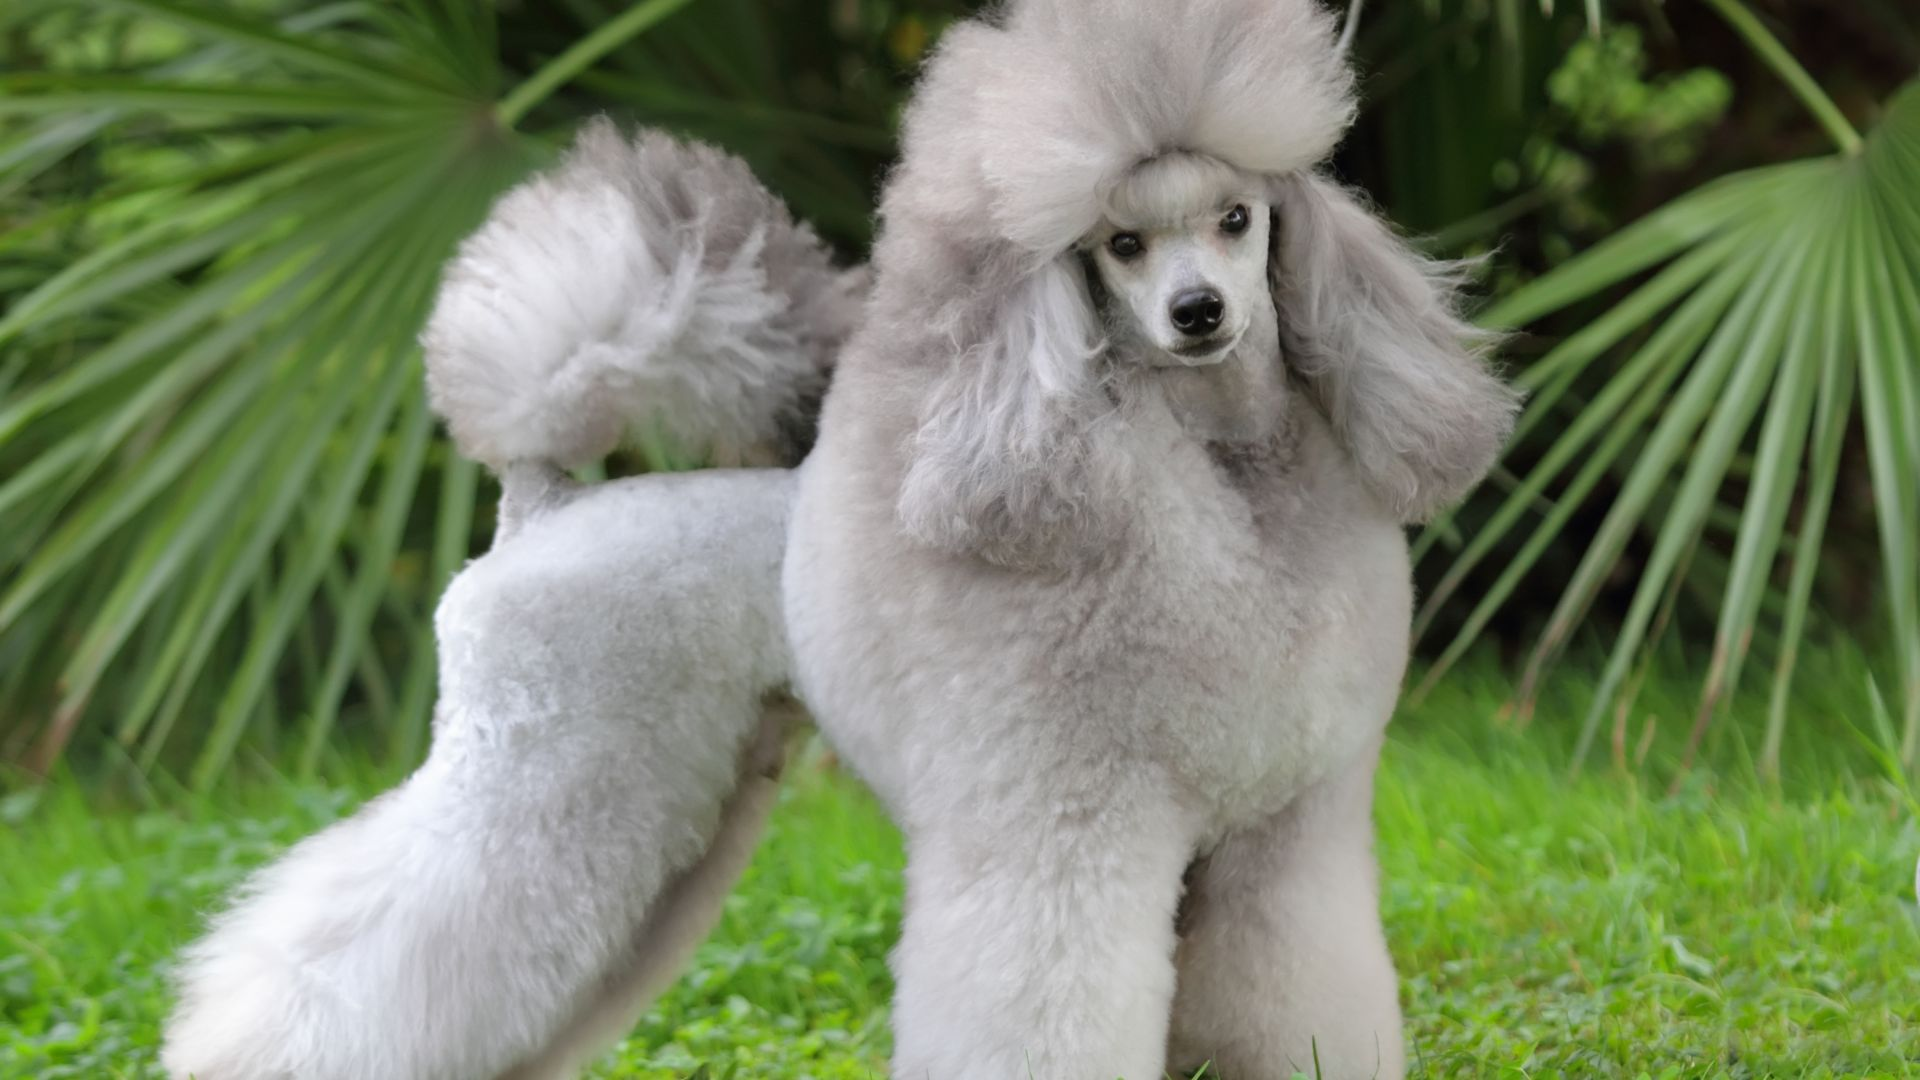 Poodle, grey, grass, cute animals